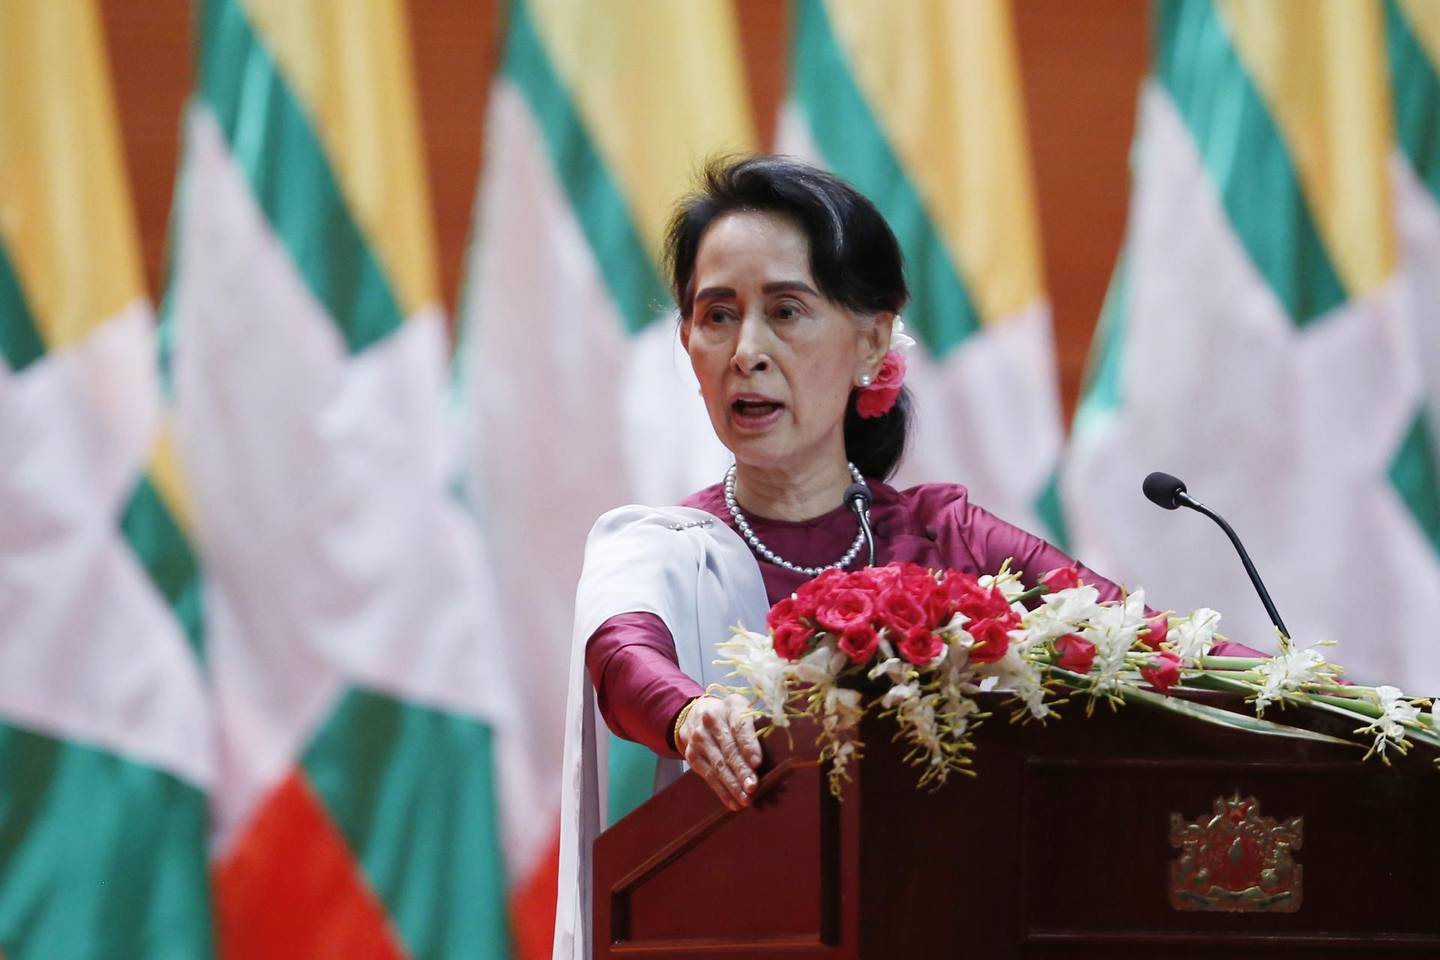 epa06213002 Myanmar's State Counselor Aung San Suu Kyi gives a speech on the Myanmar government's efforts with regard to national reconciliation and peace in Naypyitaw, Myanmar, 19 September 2017. Suu Kyi used to speech to address national reconcilliation and peace efforts in Myanmar in the 18 months that the nation has been under civilian rule. The Myanmar military has been under increased international scrutiny due to the refugee crisis in Bangladesh caused by ethnic Rohingya fleeing violence in Myanmar's Rakhine state due to a security crackdown. Authorities estimate that over 400,000 Rohingya have fled the violence in Rakhine State.  EPA/HEIN HTET